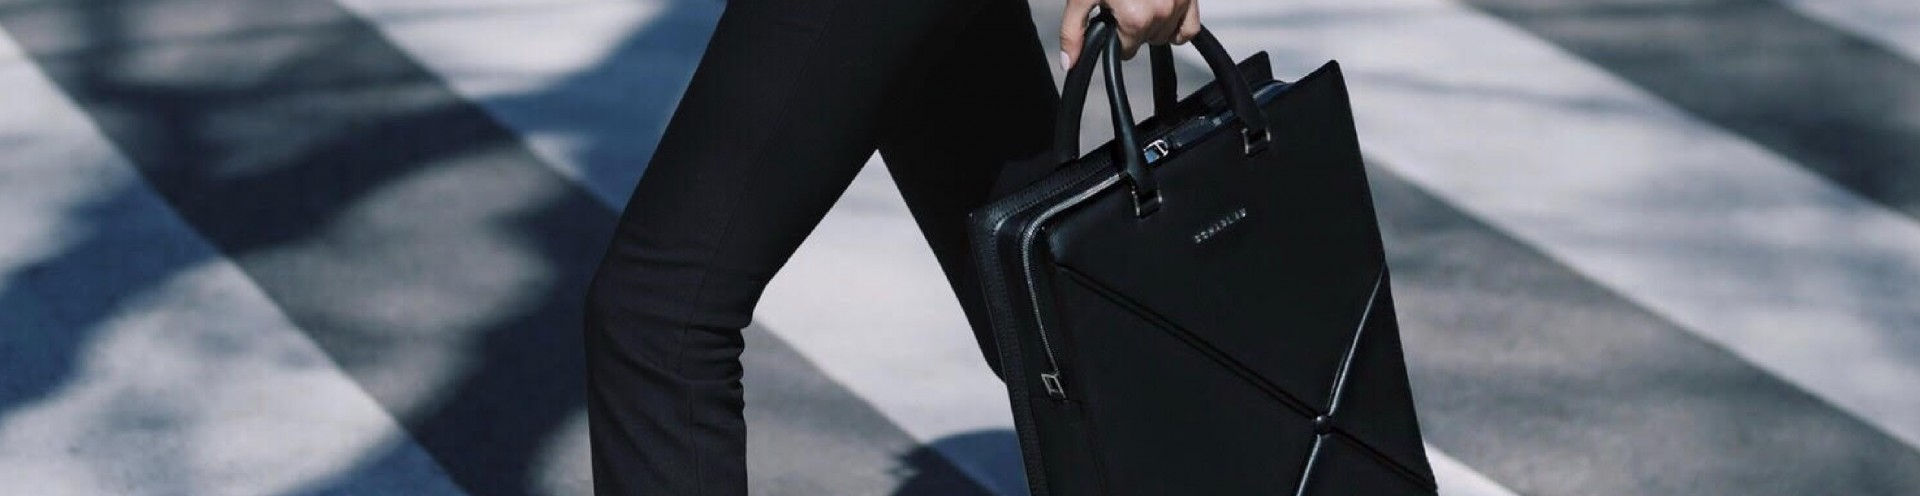 Women's Leather Laptop Bags